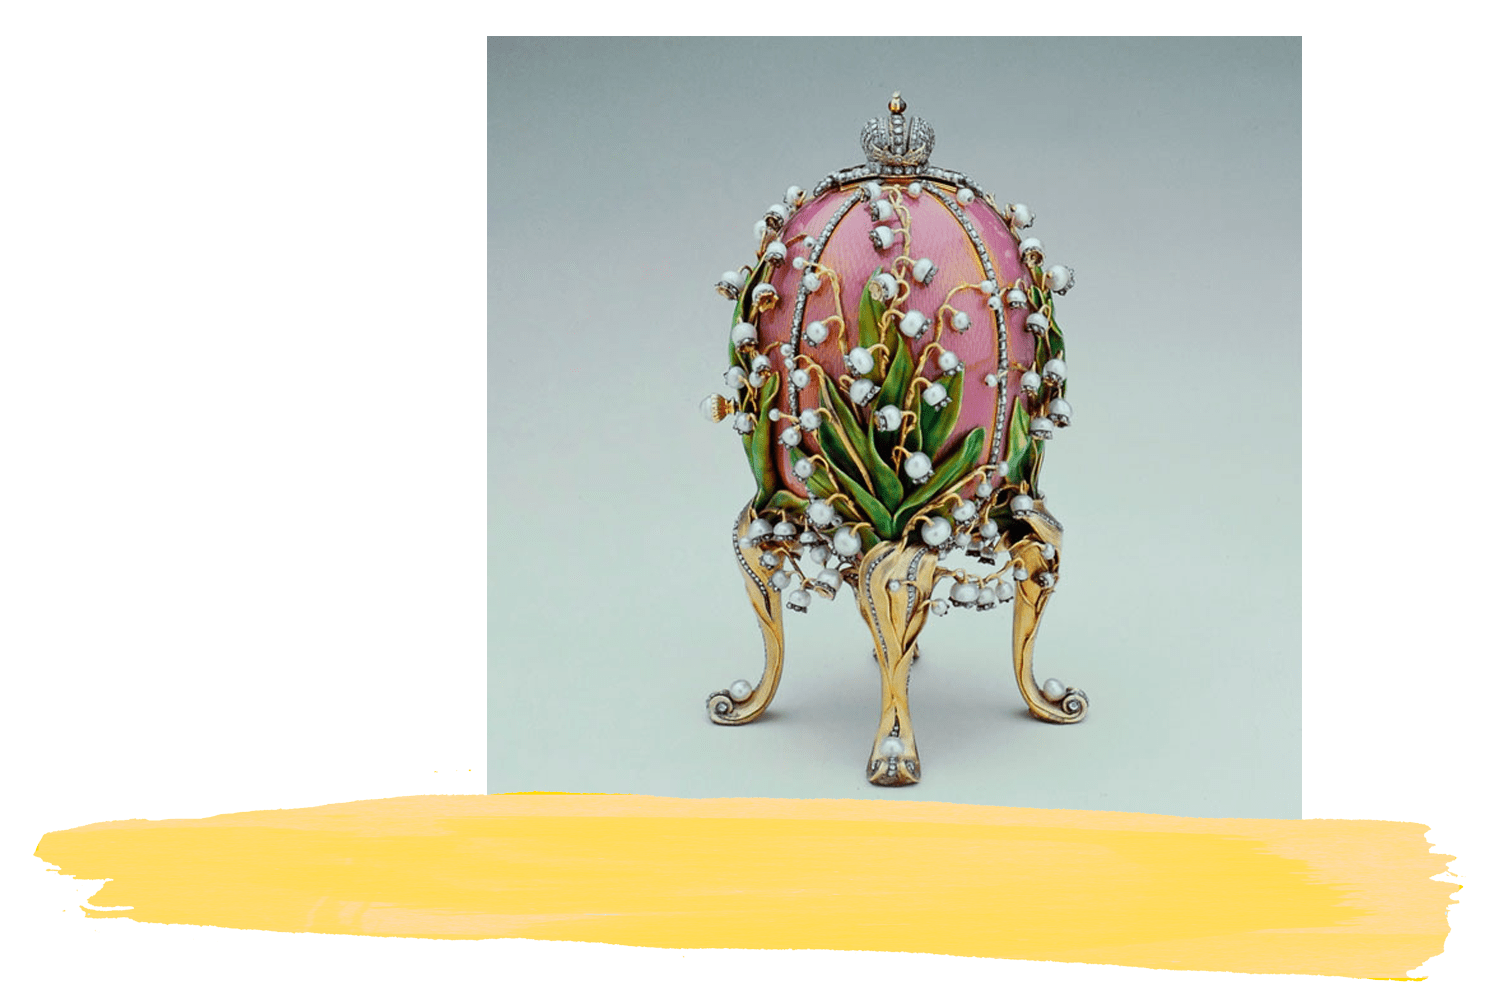 Carl faberge and the russian imperial family new canaan library carl faberge is best known for his series of 50 imperial easter eggs crafted for the wives of the last two tsars of russia alexander iii and nicholas ii negle Gallery